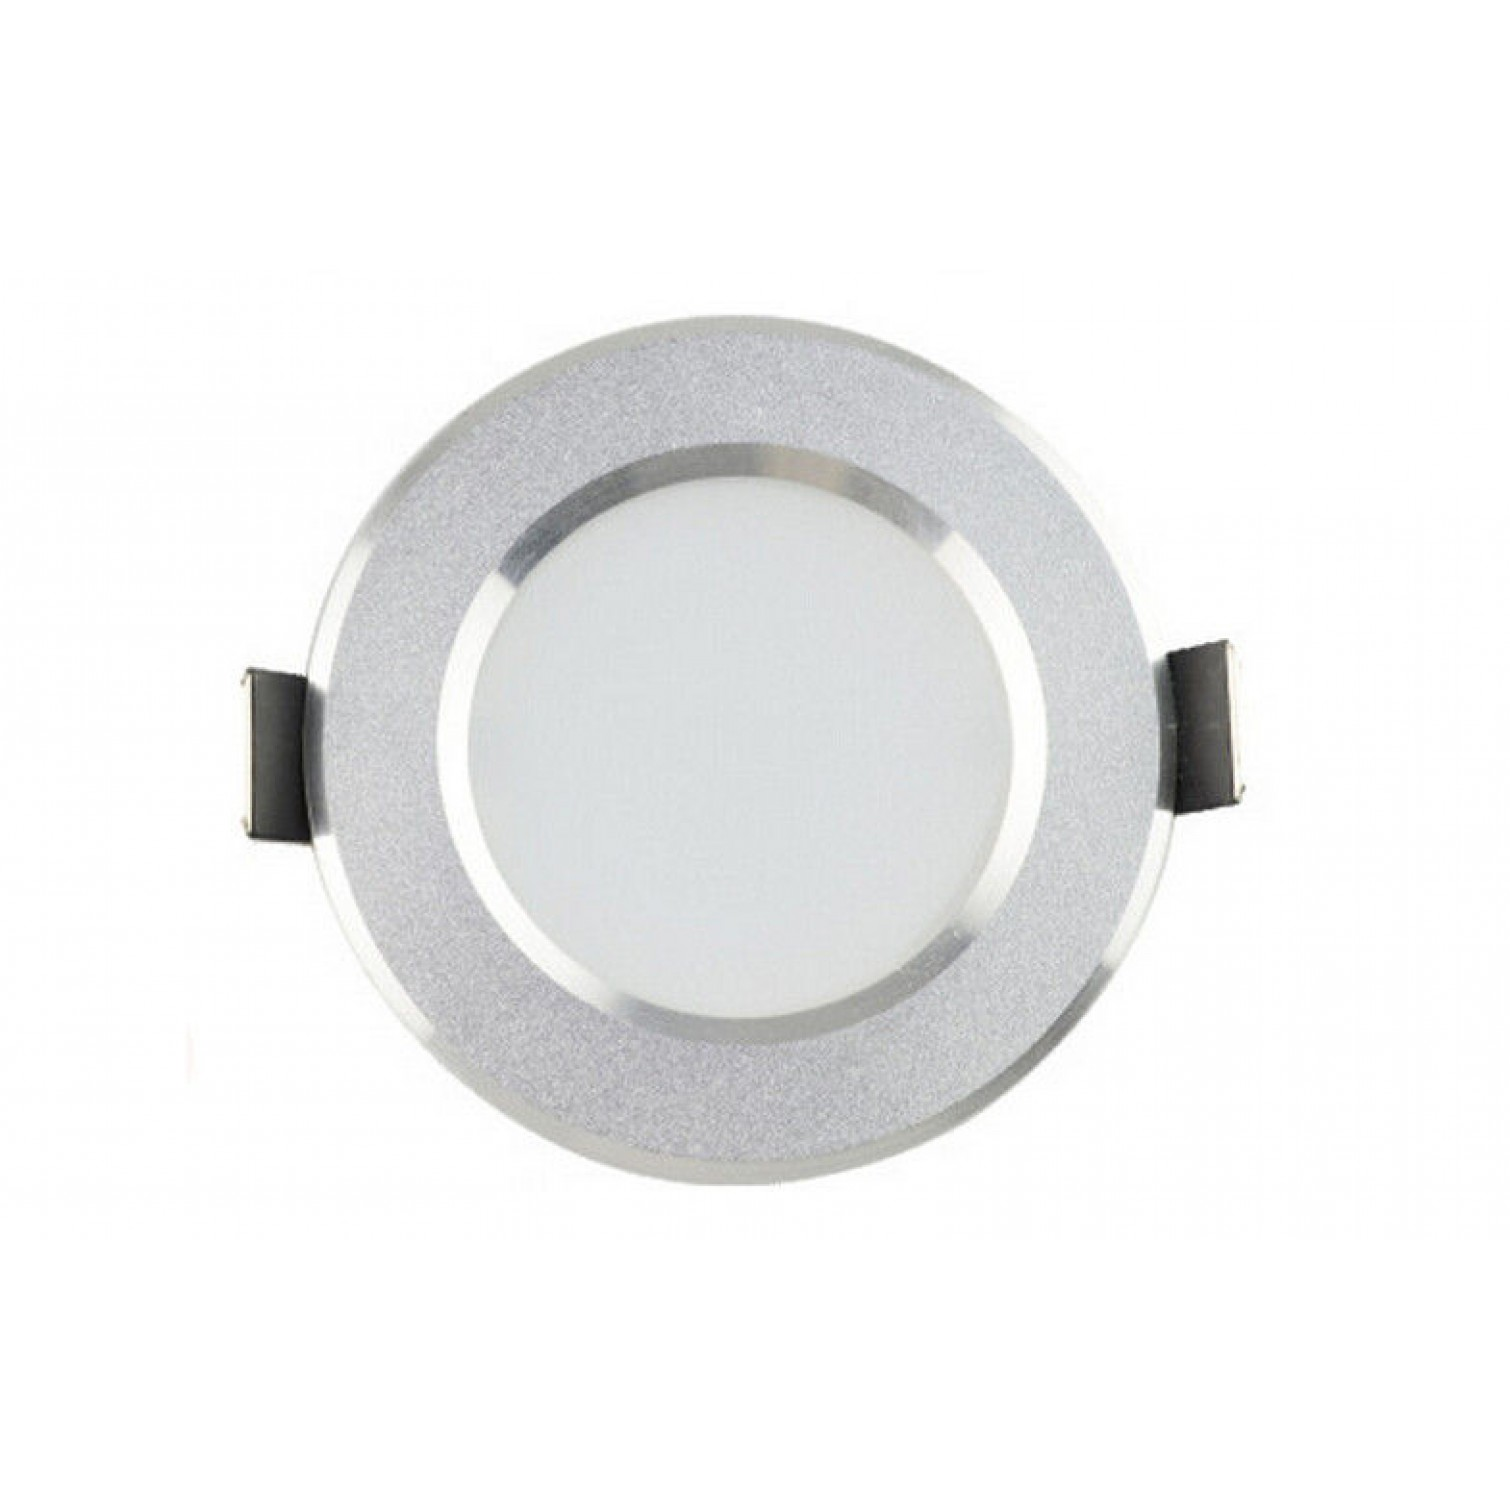 ojo-de-buey-led-3w-borde-blanco-110v-3colores-dimeable-25plgs-diametro